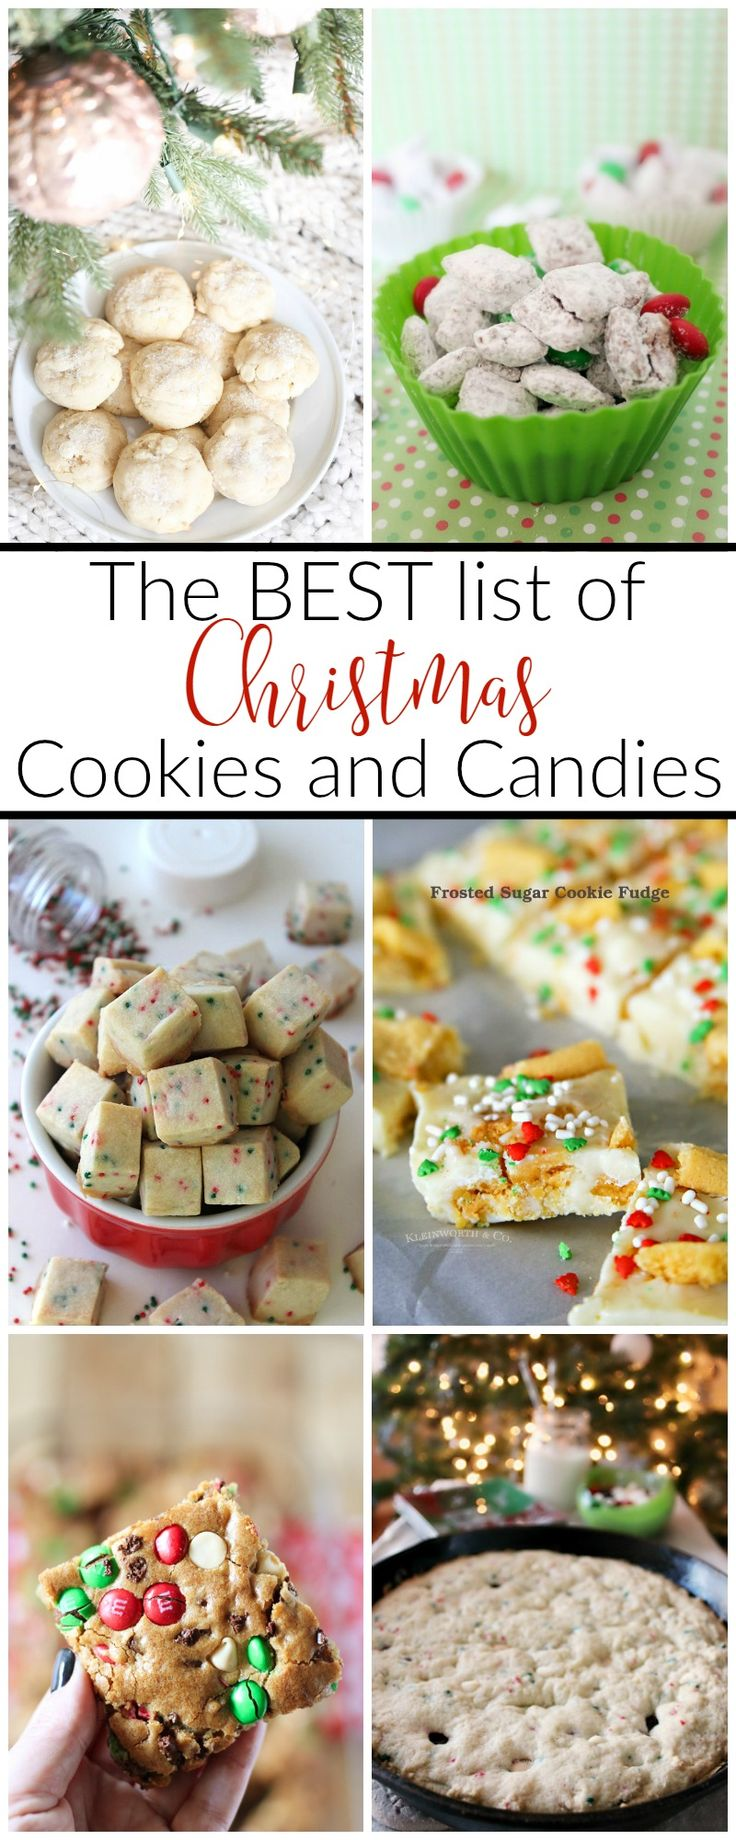 The Best List of Christmas Cookies and Candies